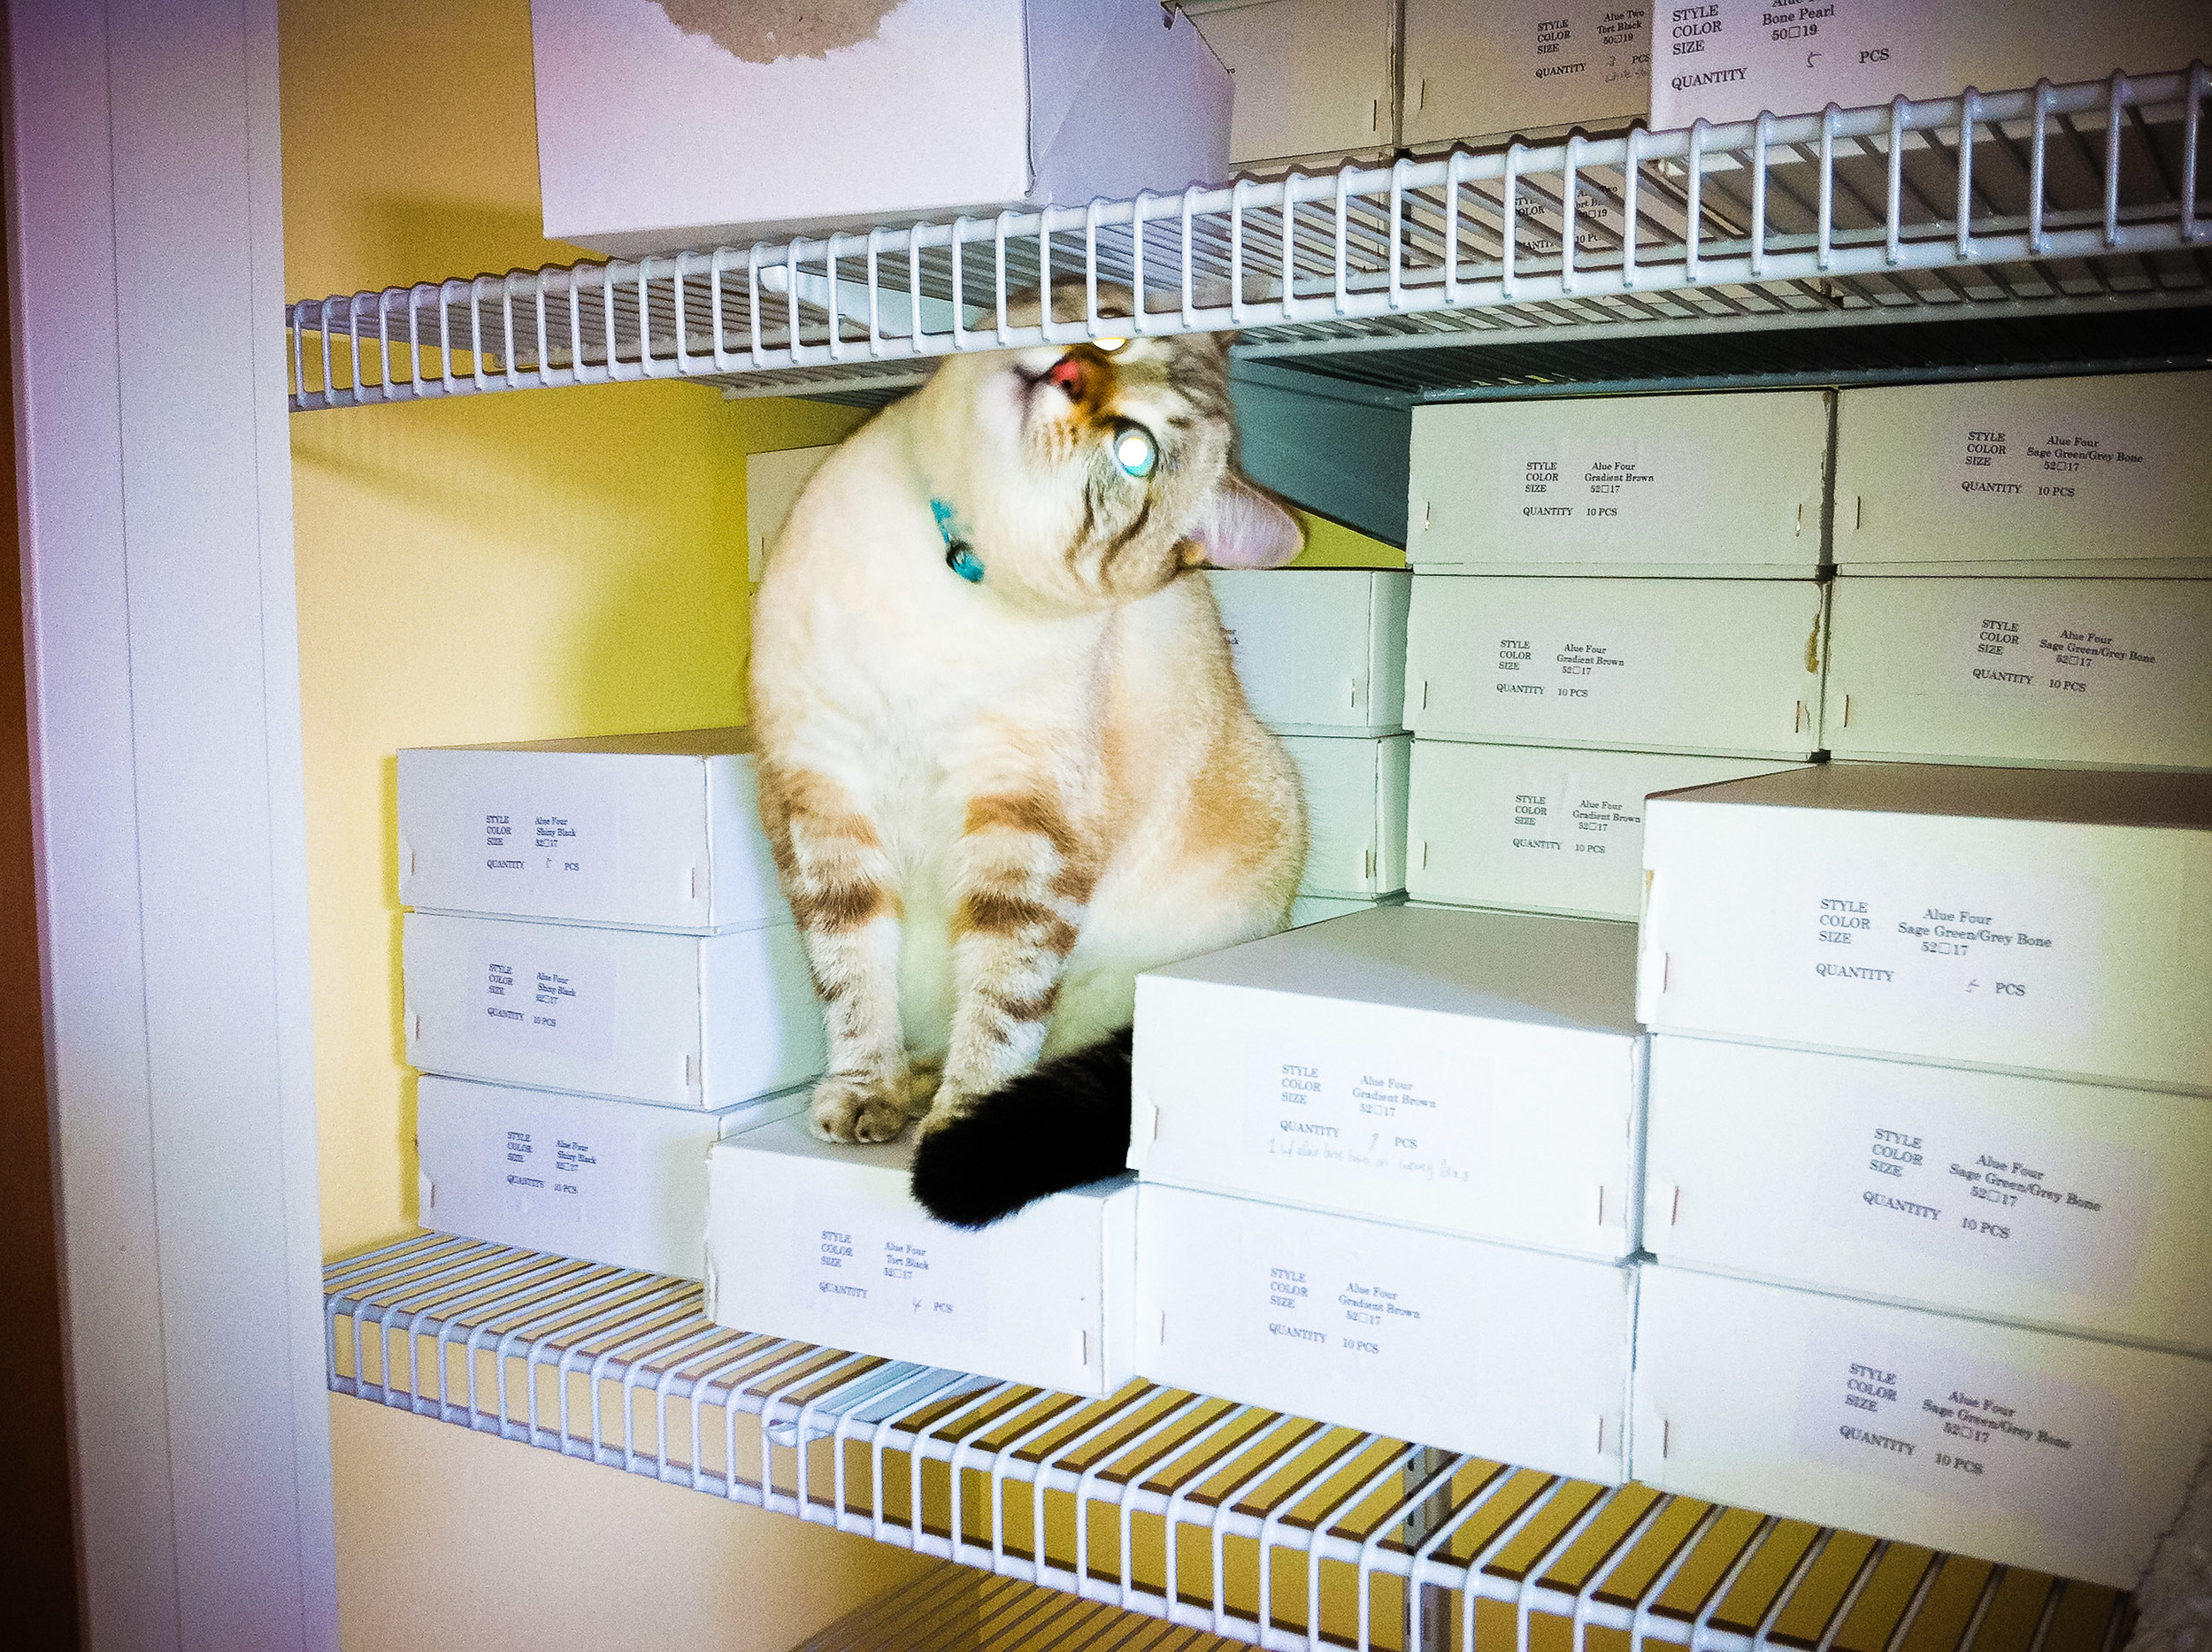 Leo the cat in the alue optics warehouse